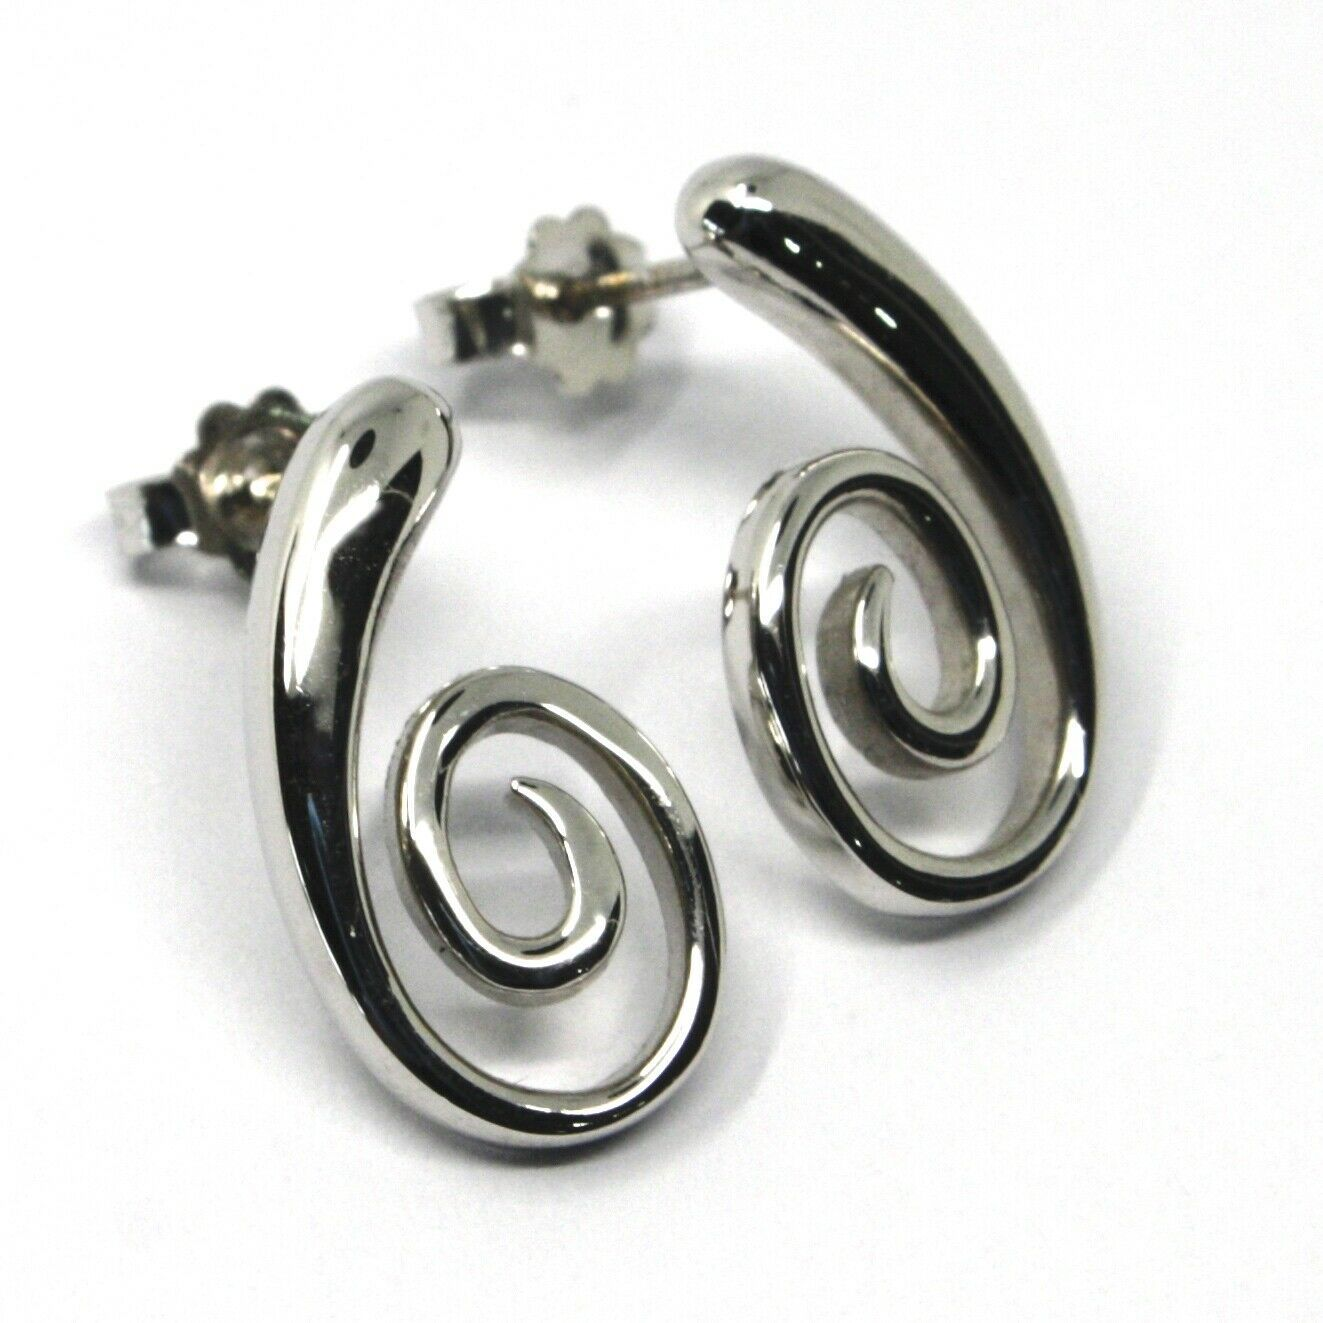 SOLID 18K WHITE GOLD PENDANT EARRINGS, SPIRAL, OVAL, PENDANT, MADE IN ITALY